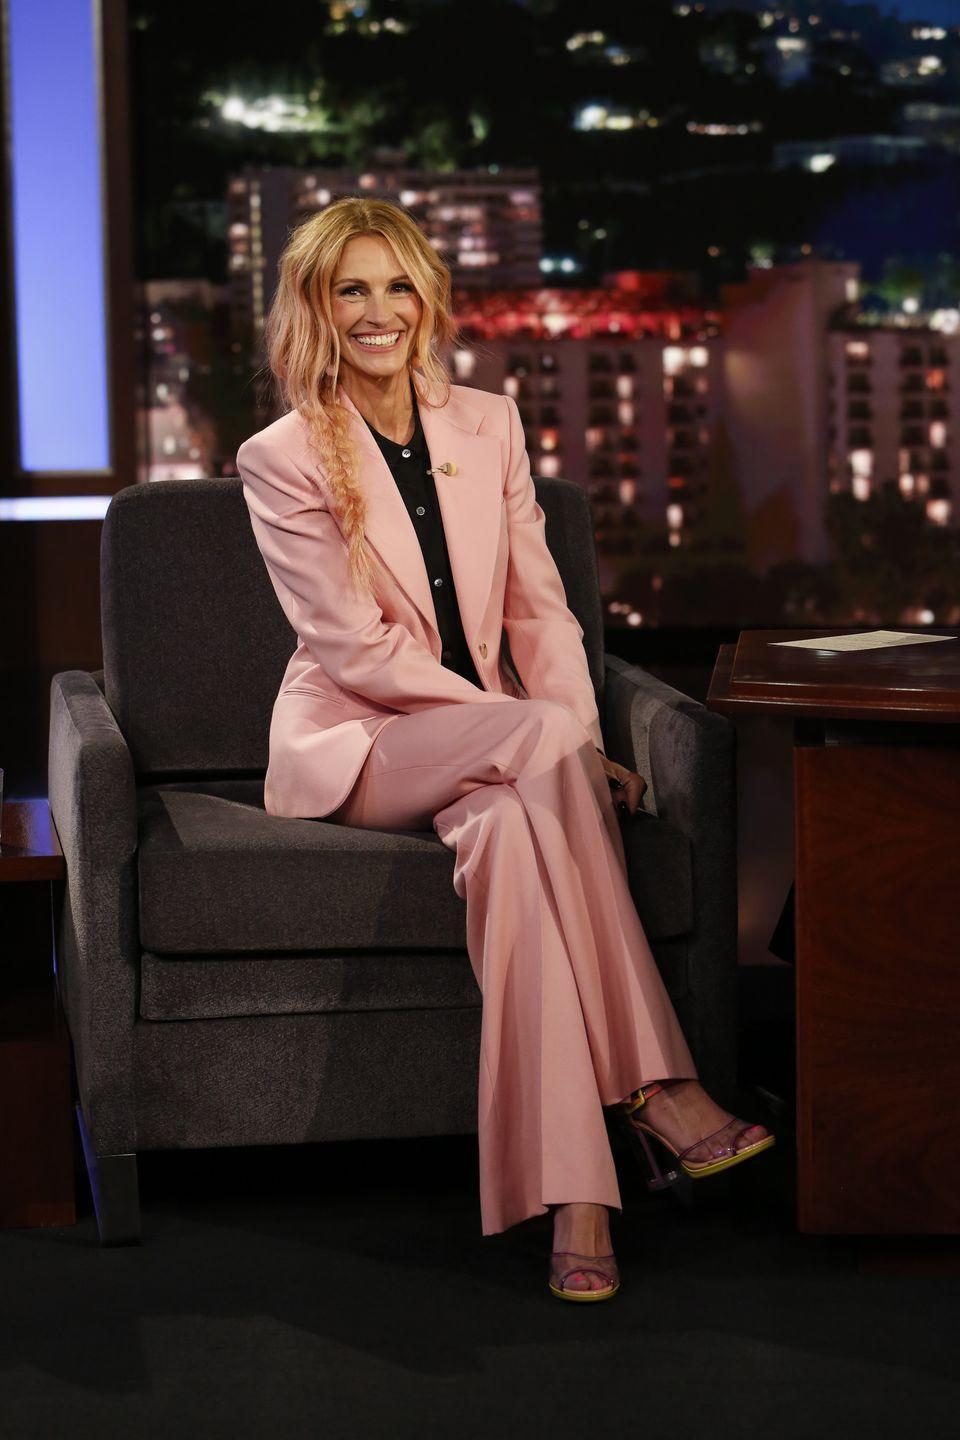 """<p>There's no hair color that <strong>Julia Roberts</strong> can't pull off. Here, she matched her blonde locks to her suit by tinting them peach. This subtle ombré is accentuated with mussed-up waves and an undone braid. </p><p><a class=""""link rapid-noclick-resp"""" href=""""https://go.redirectingat.com?id=74968X1596630&url=https%3A%2F%2Fwww.ulta.com%2Funicorn-hair-semi-permanent-hair-color-tint%3FproductId%3DxlsImpprod17601165&sref=https%3A%2F%2Fwww.goodhousekeeping.com%2Fbeauty%2Fhair%2Fg35154692%2Fpeach-hair-color-ideas%2F"""" rel=""""nofollow noopener"""" target=""""_blank"""" data-ylk=""""slk:SHOP PEACH TINT"""">SHOP PEACH TINT</a></p>"""